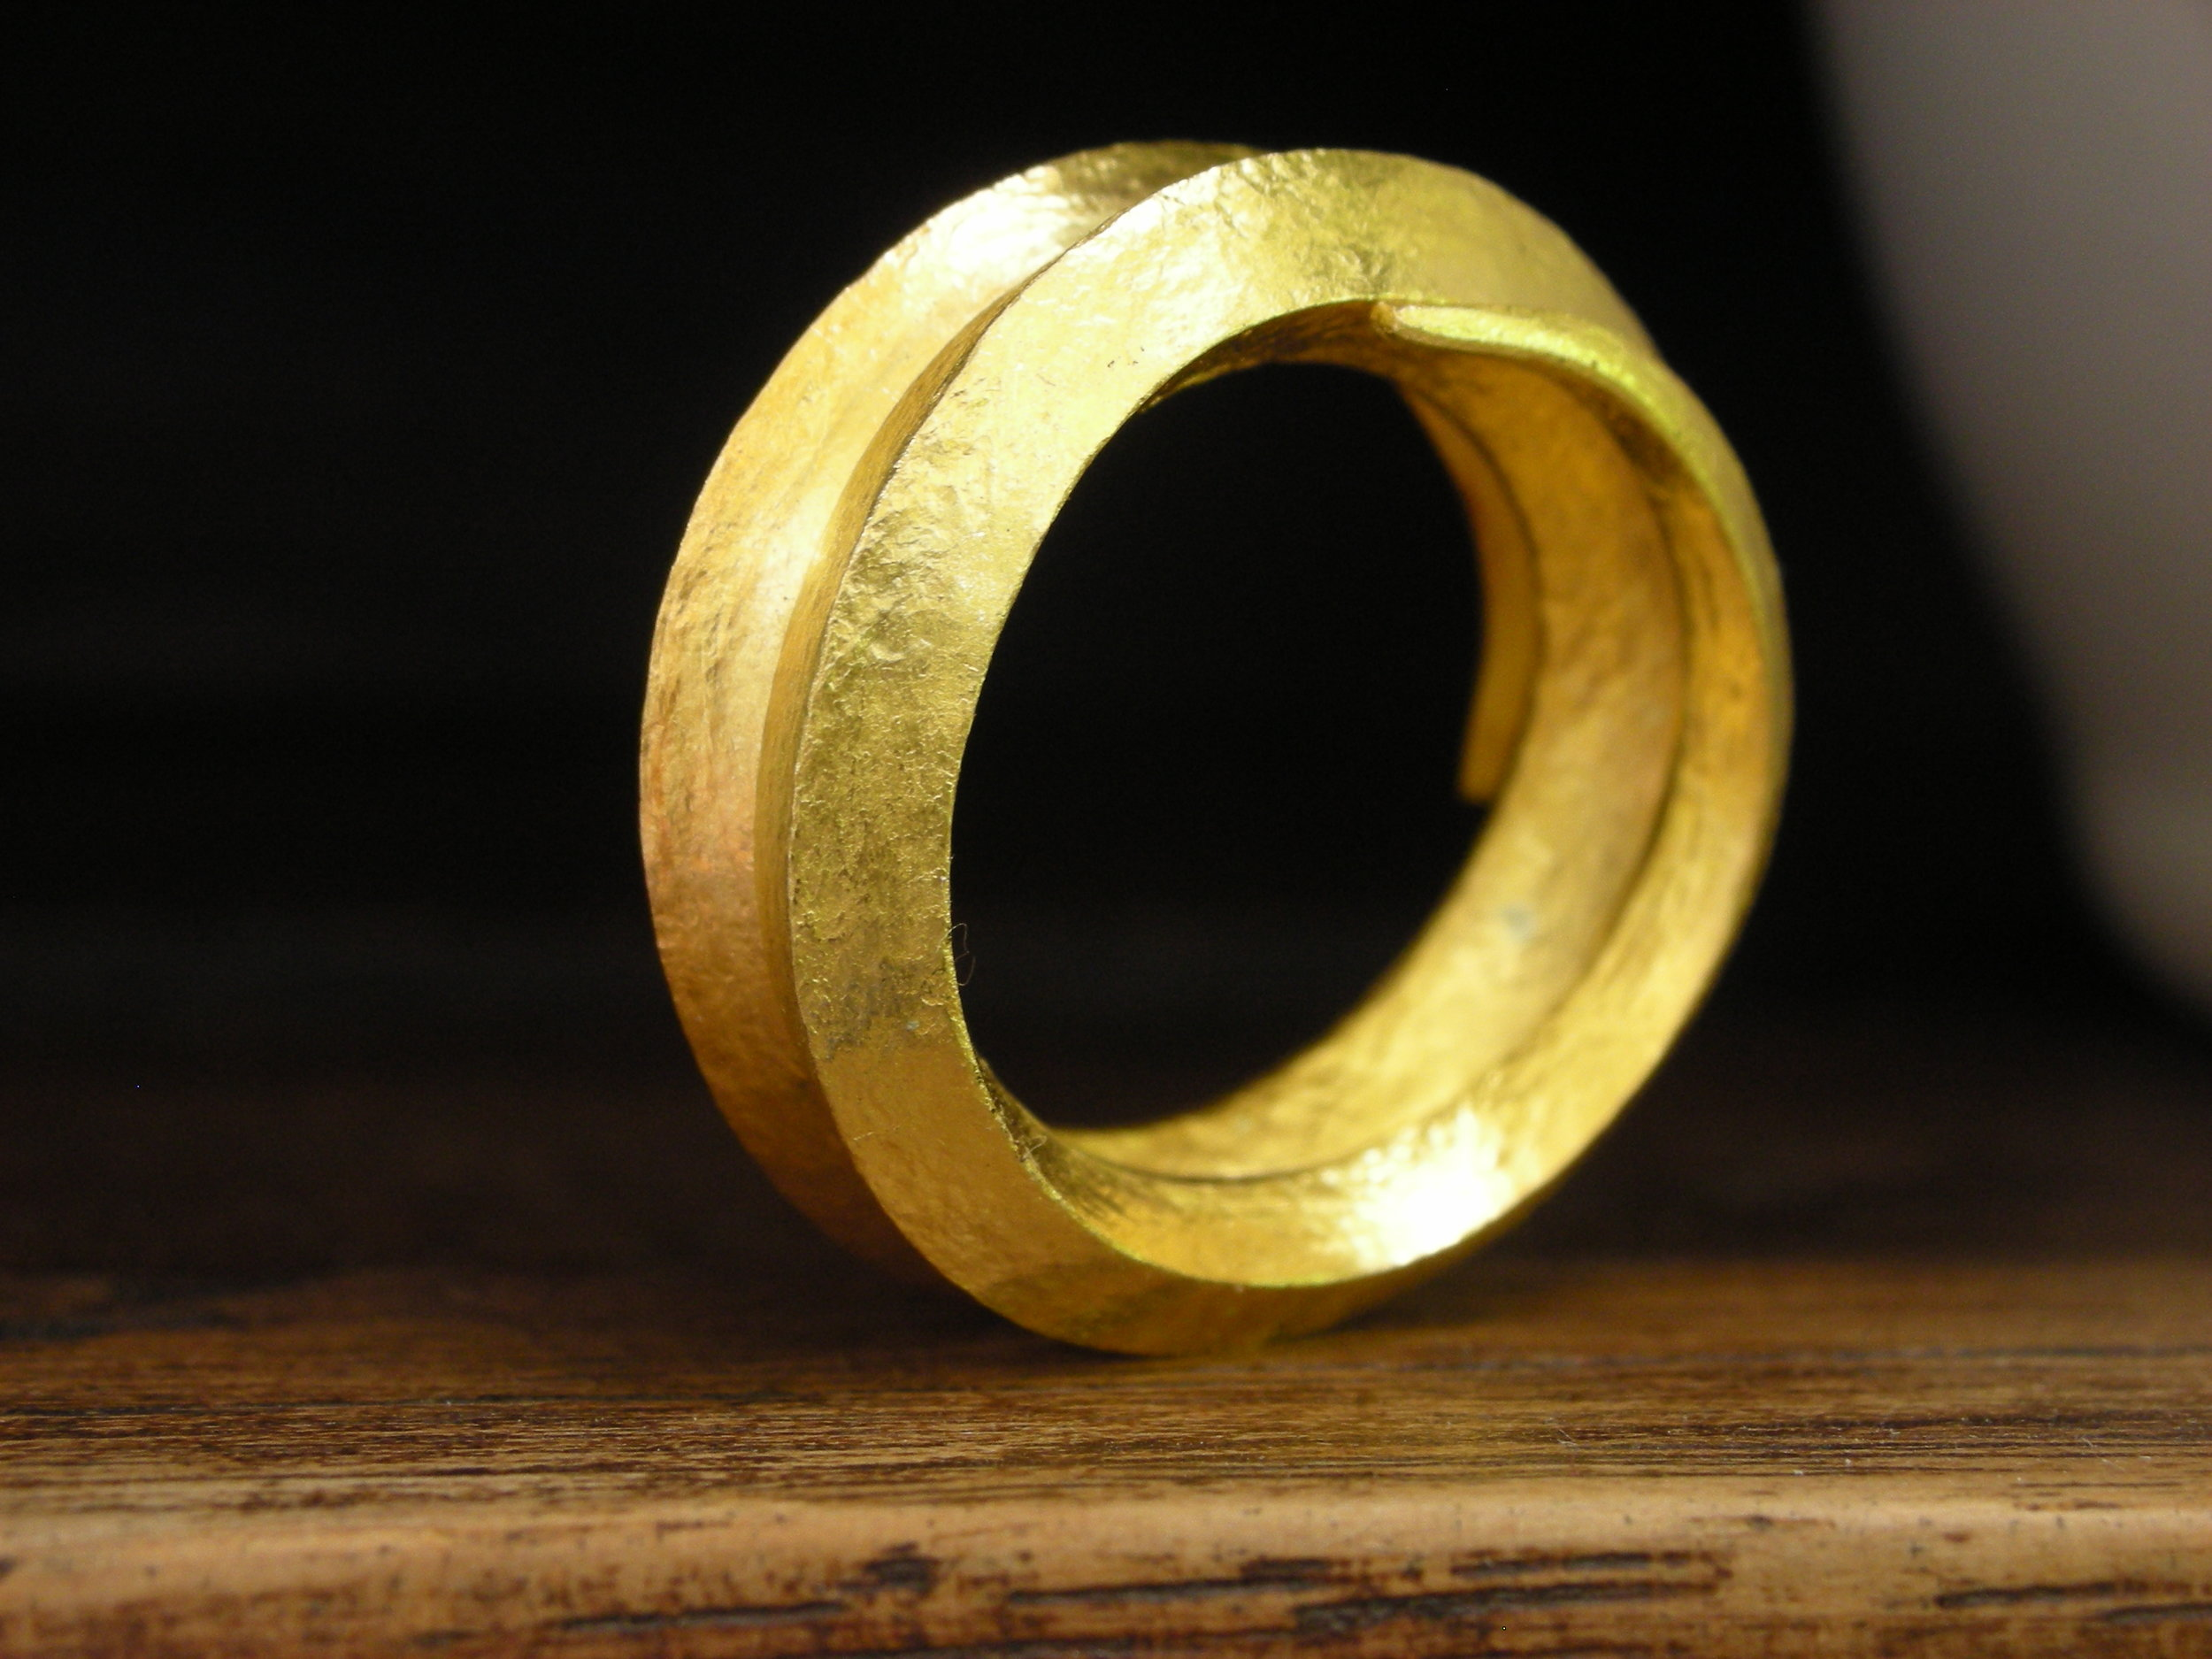 Hand forged from 24k gold. This was a happy accident of letting the process take you where it seems to want to go.